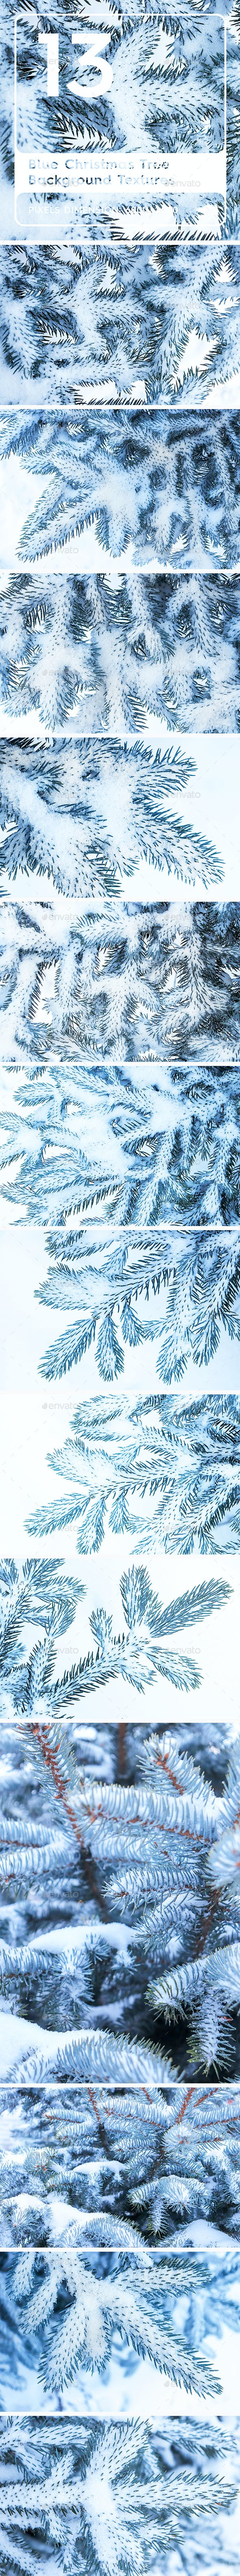 13 Blue Tree Background Textures - 3DOcean Item for Sale